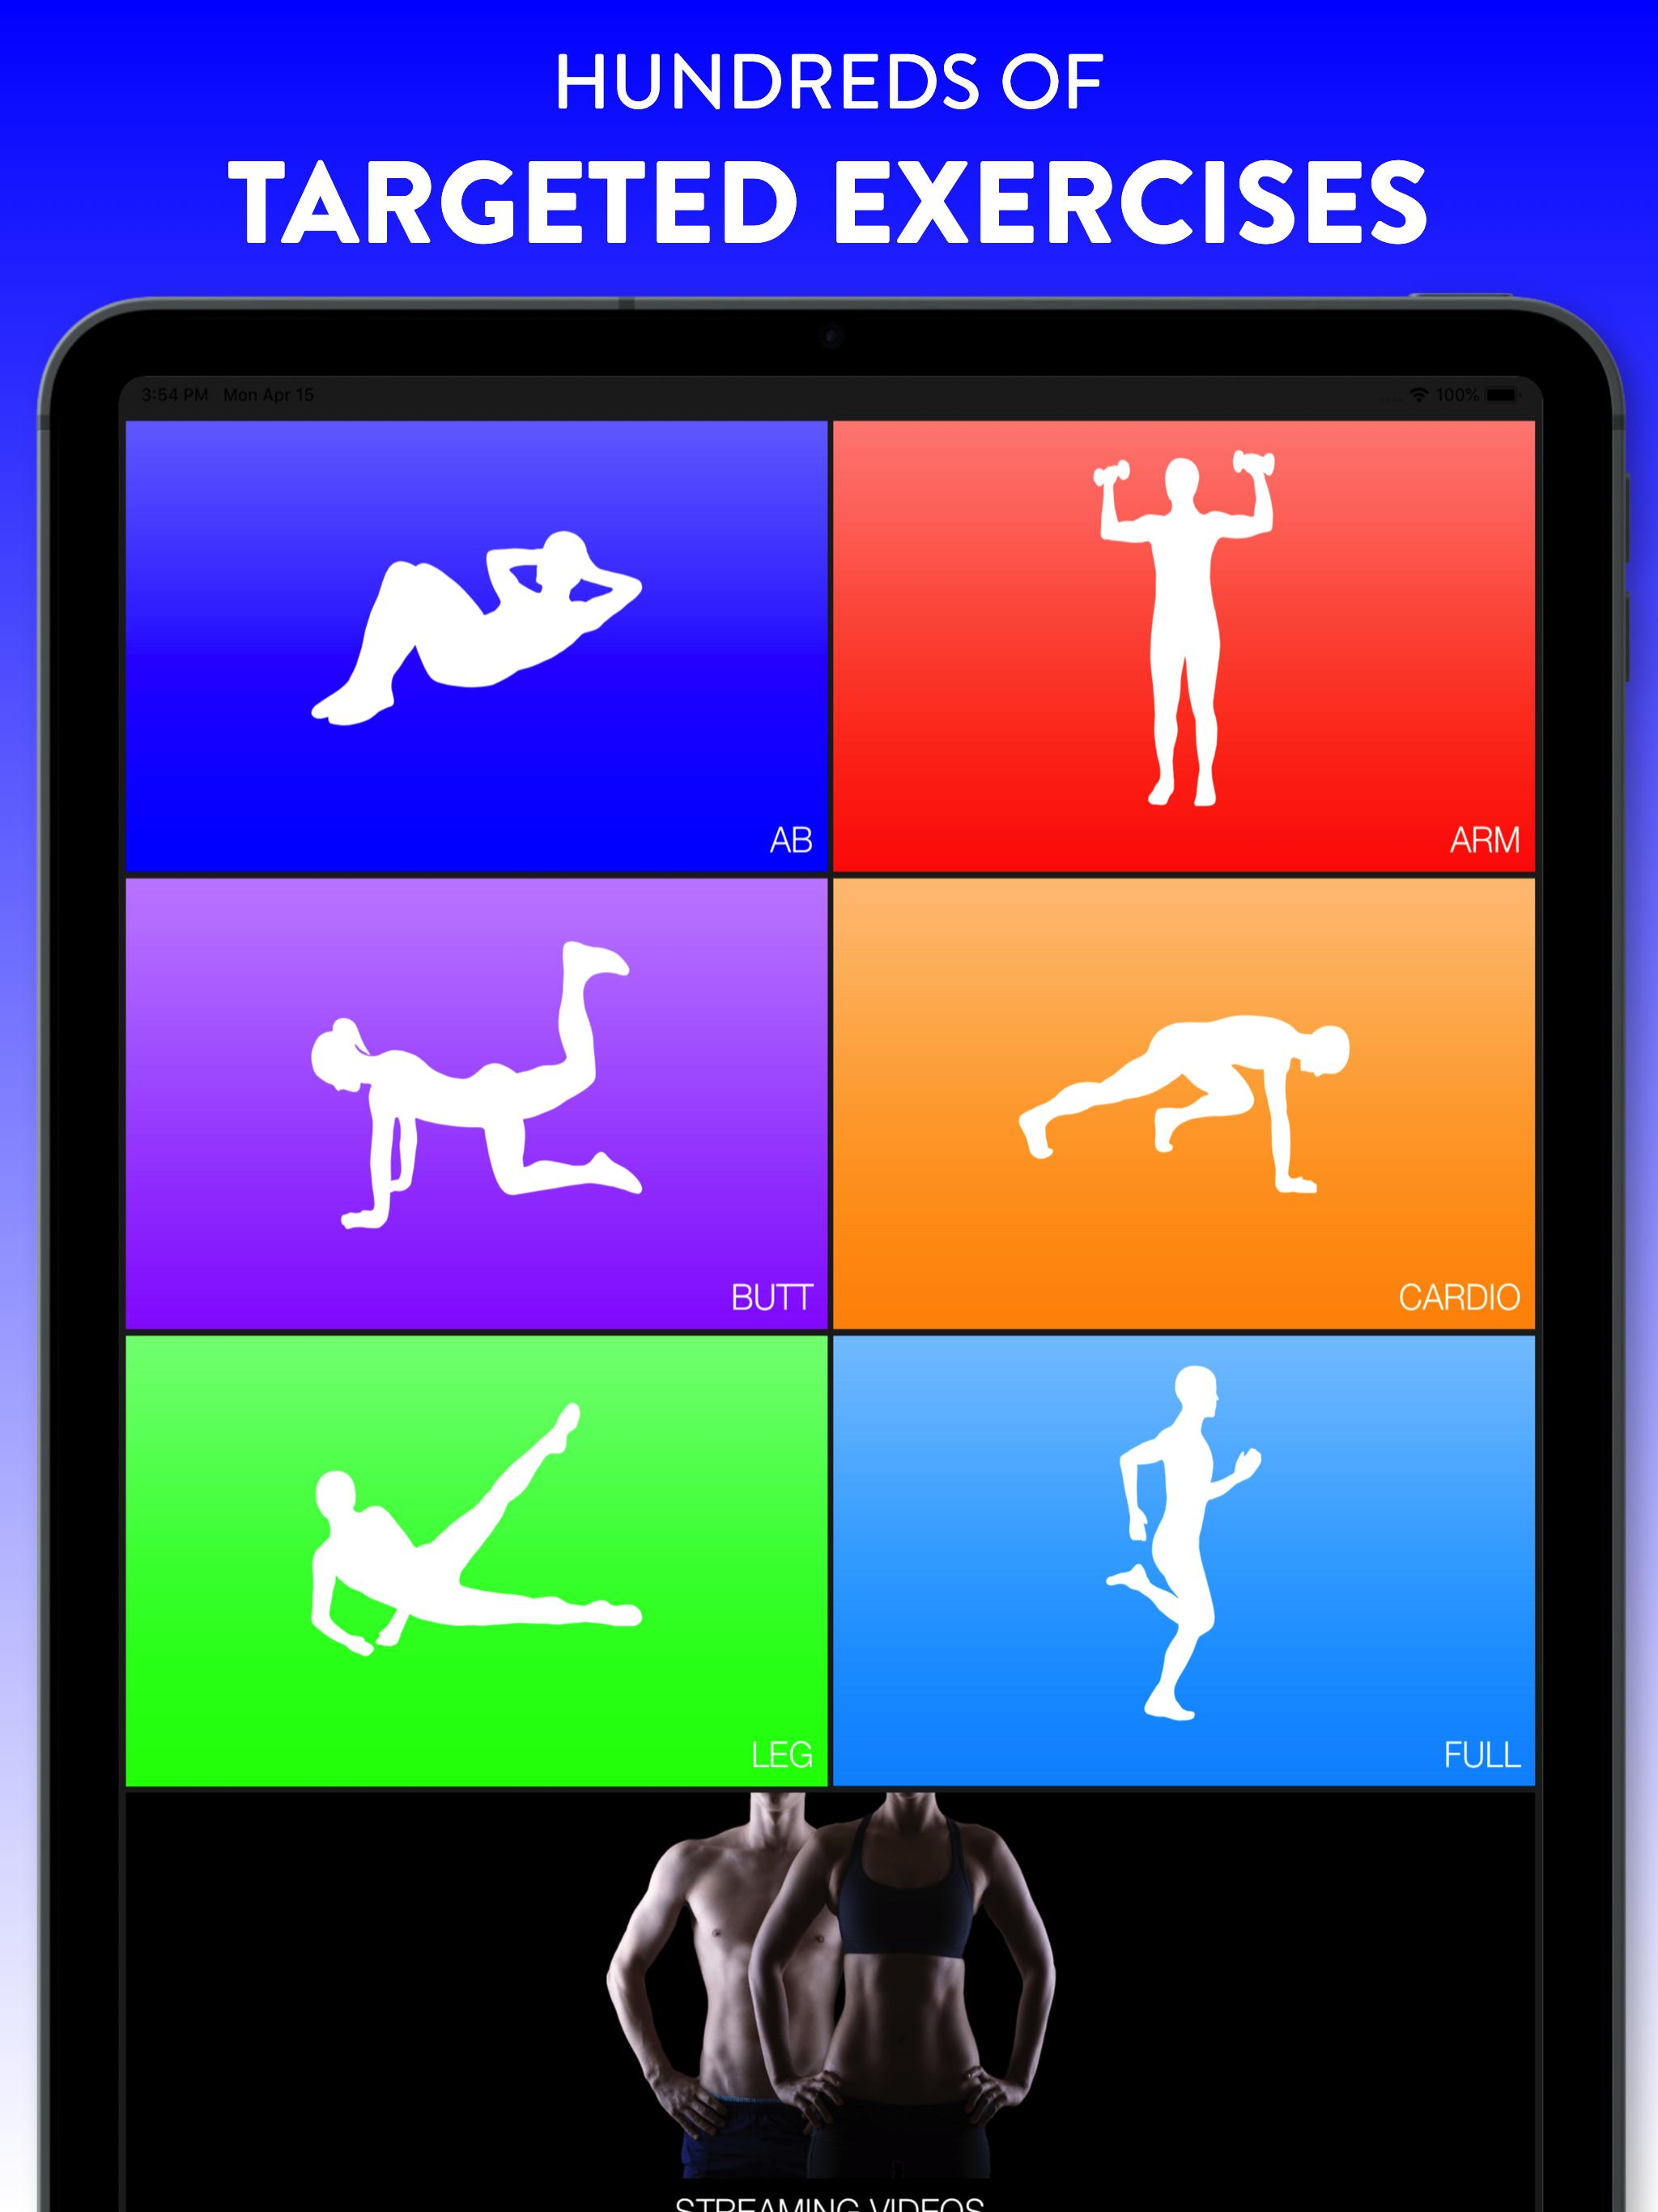 Daily Workouts - Exercise Fitness Workout Trainer 6.12 Screenshot 7